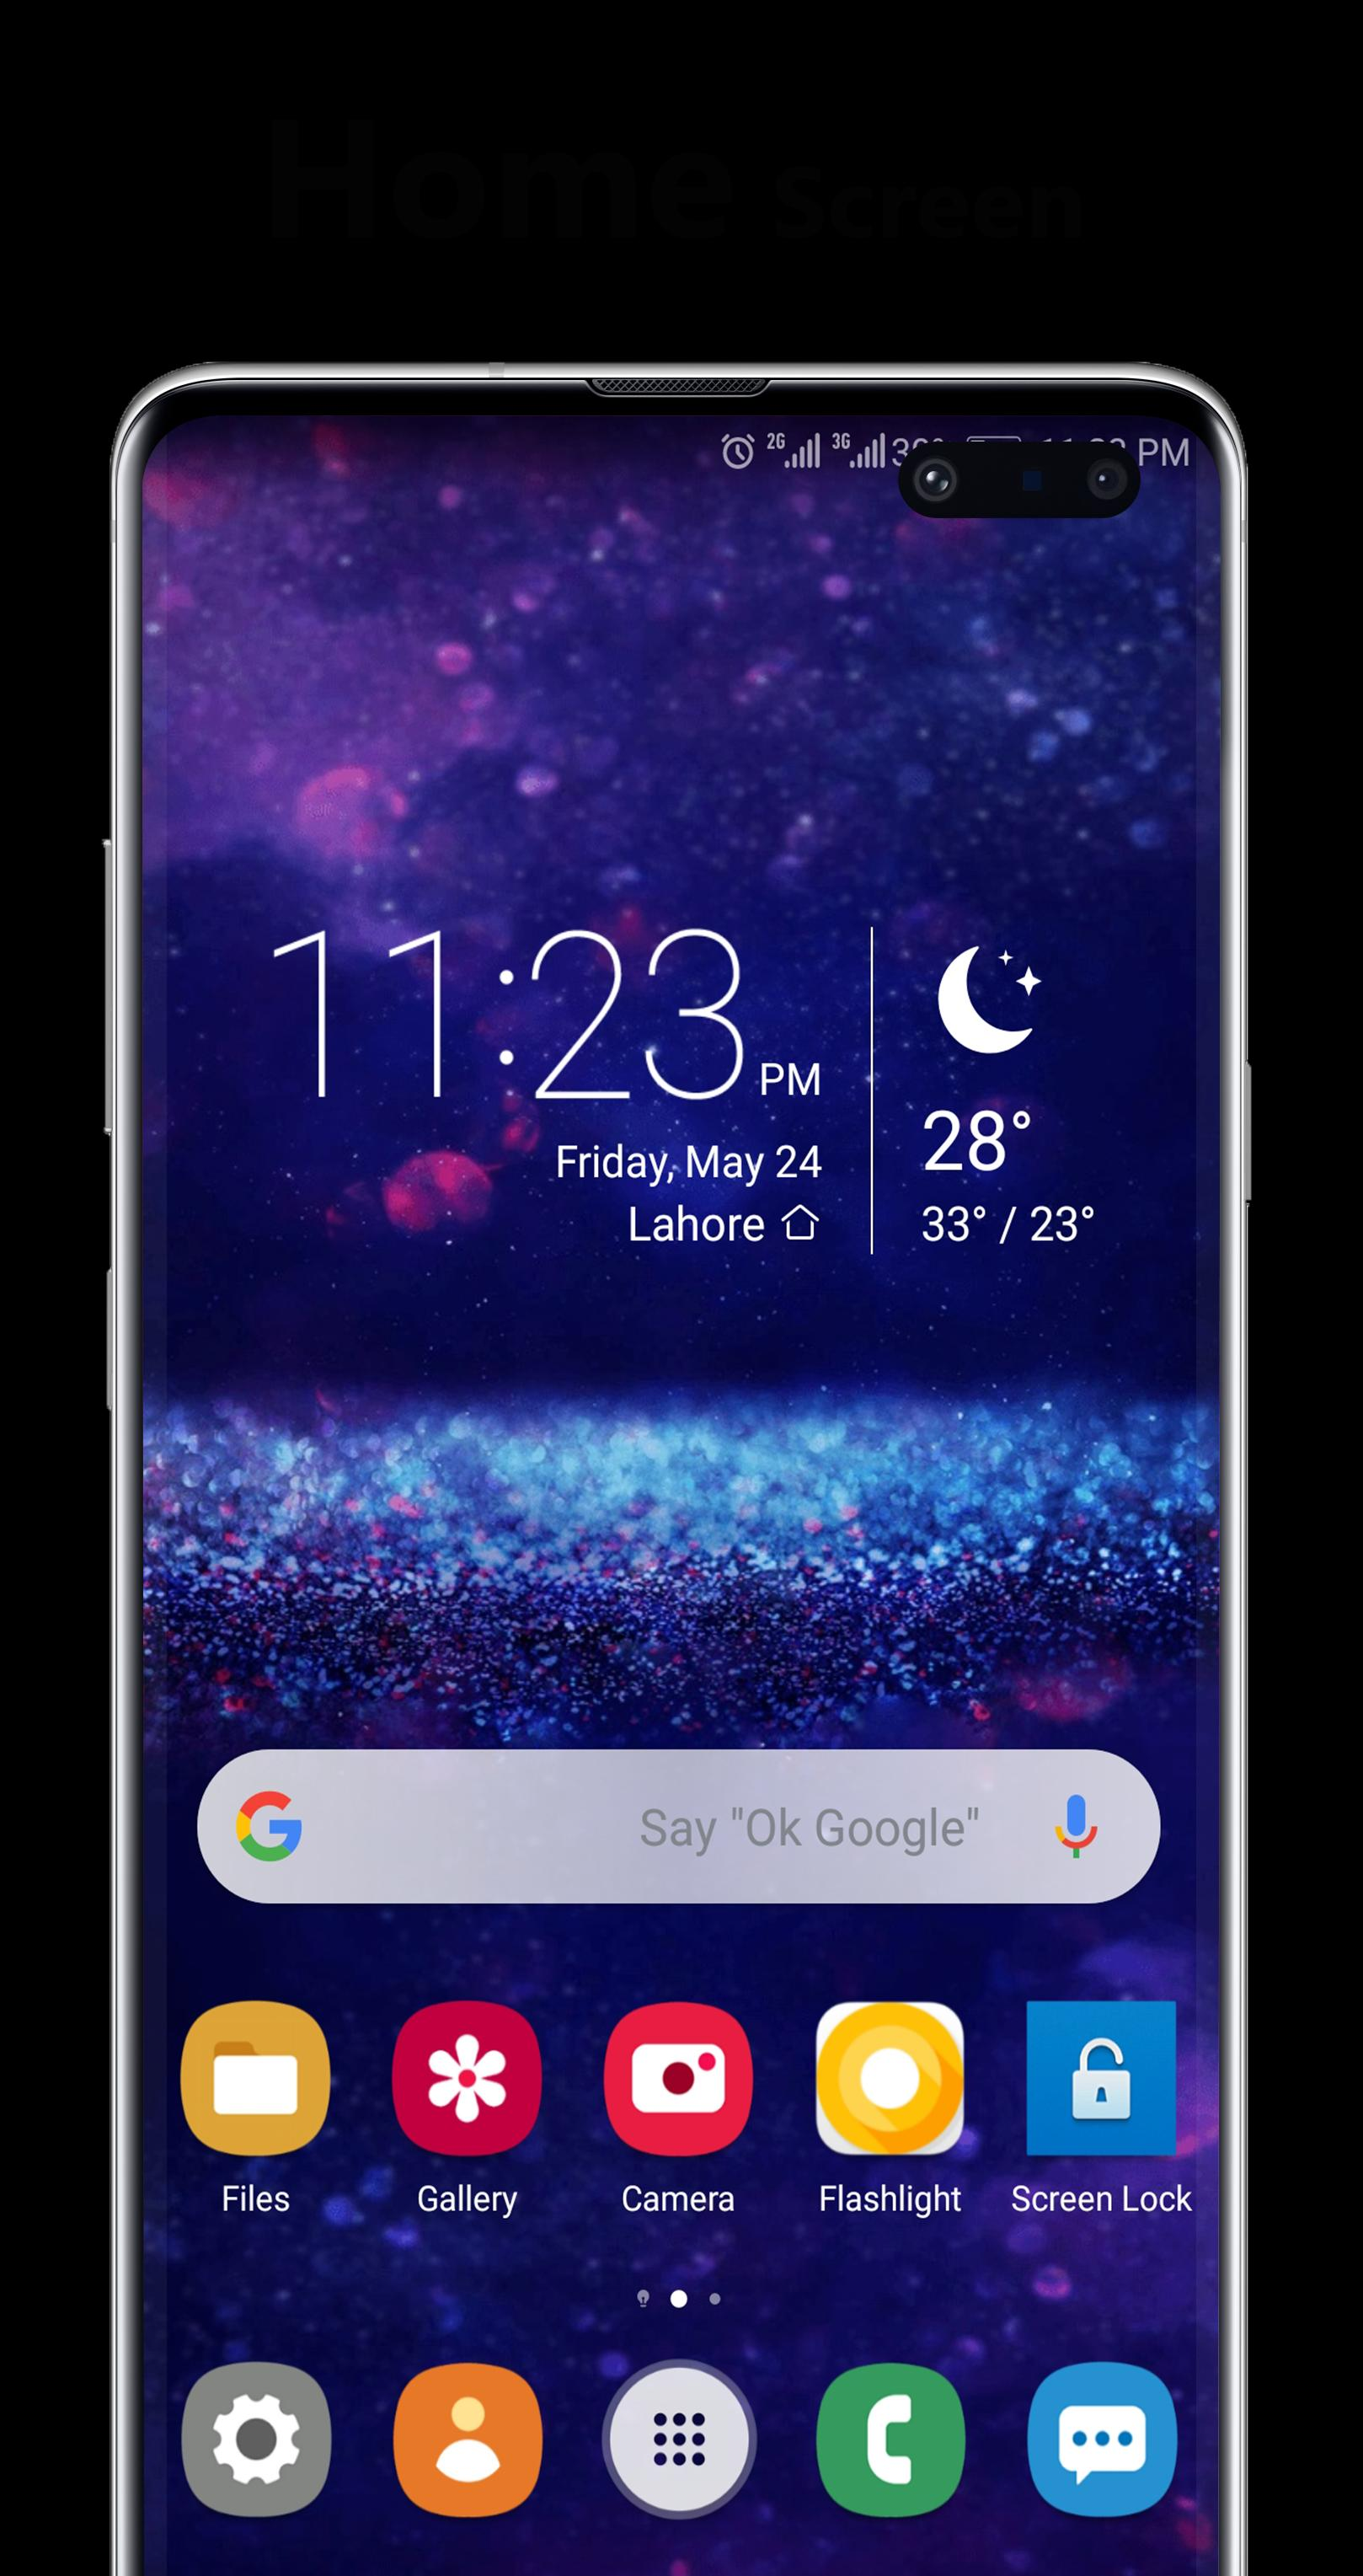 S10 One Ui Dark Emui Theme for Android - APK Download